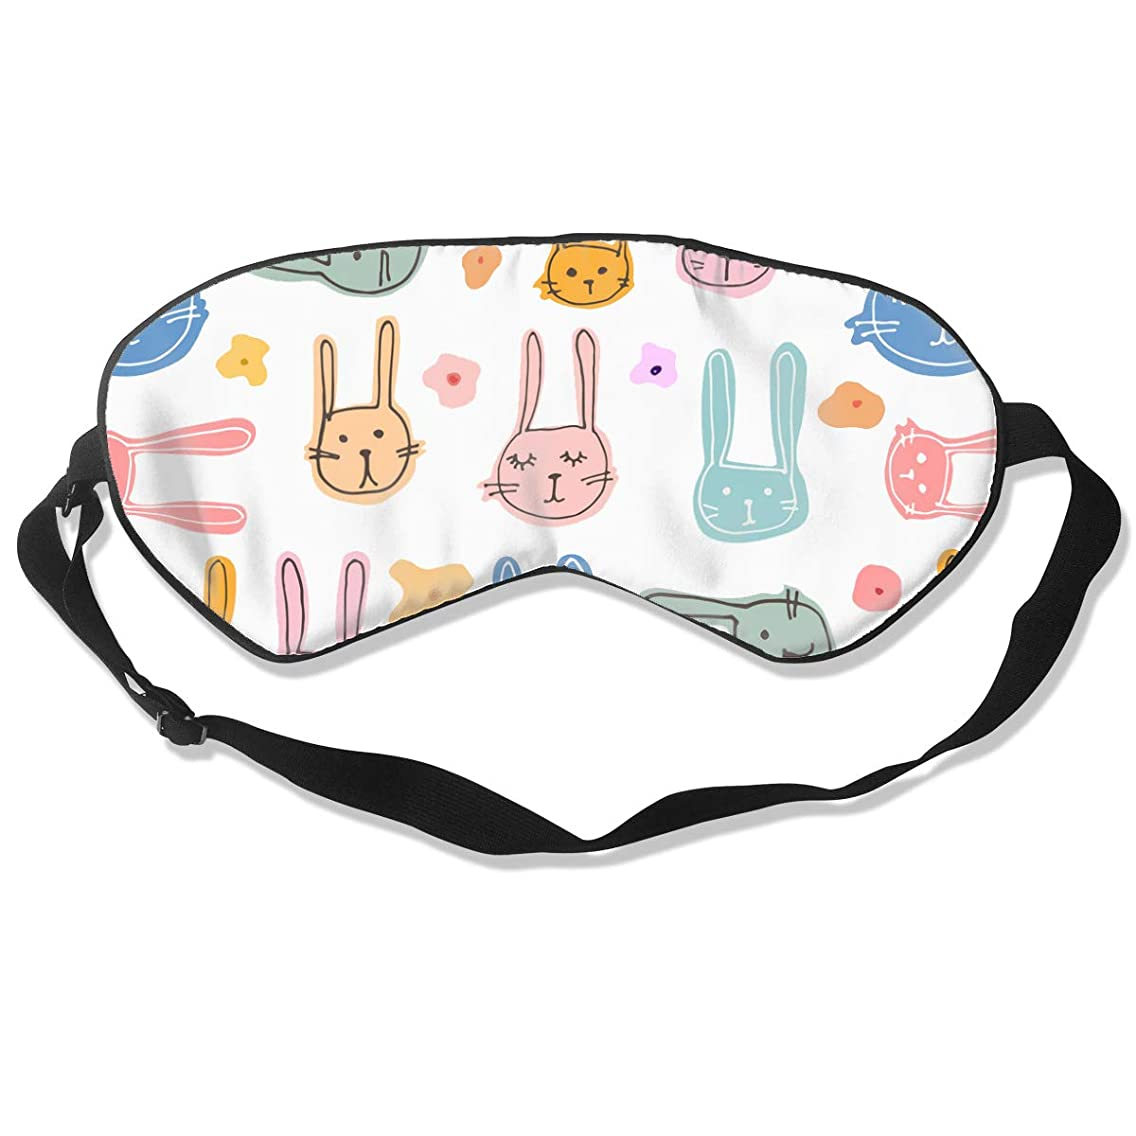 FSGRFERER Cute Bunny Best Sleeping Mask Eye Mask for Sleeping Eye Mask Cover for Travel, Nap,Blindfold with Adjustable Strap for Men, Women